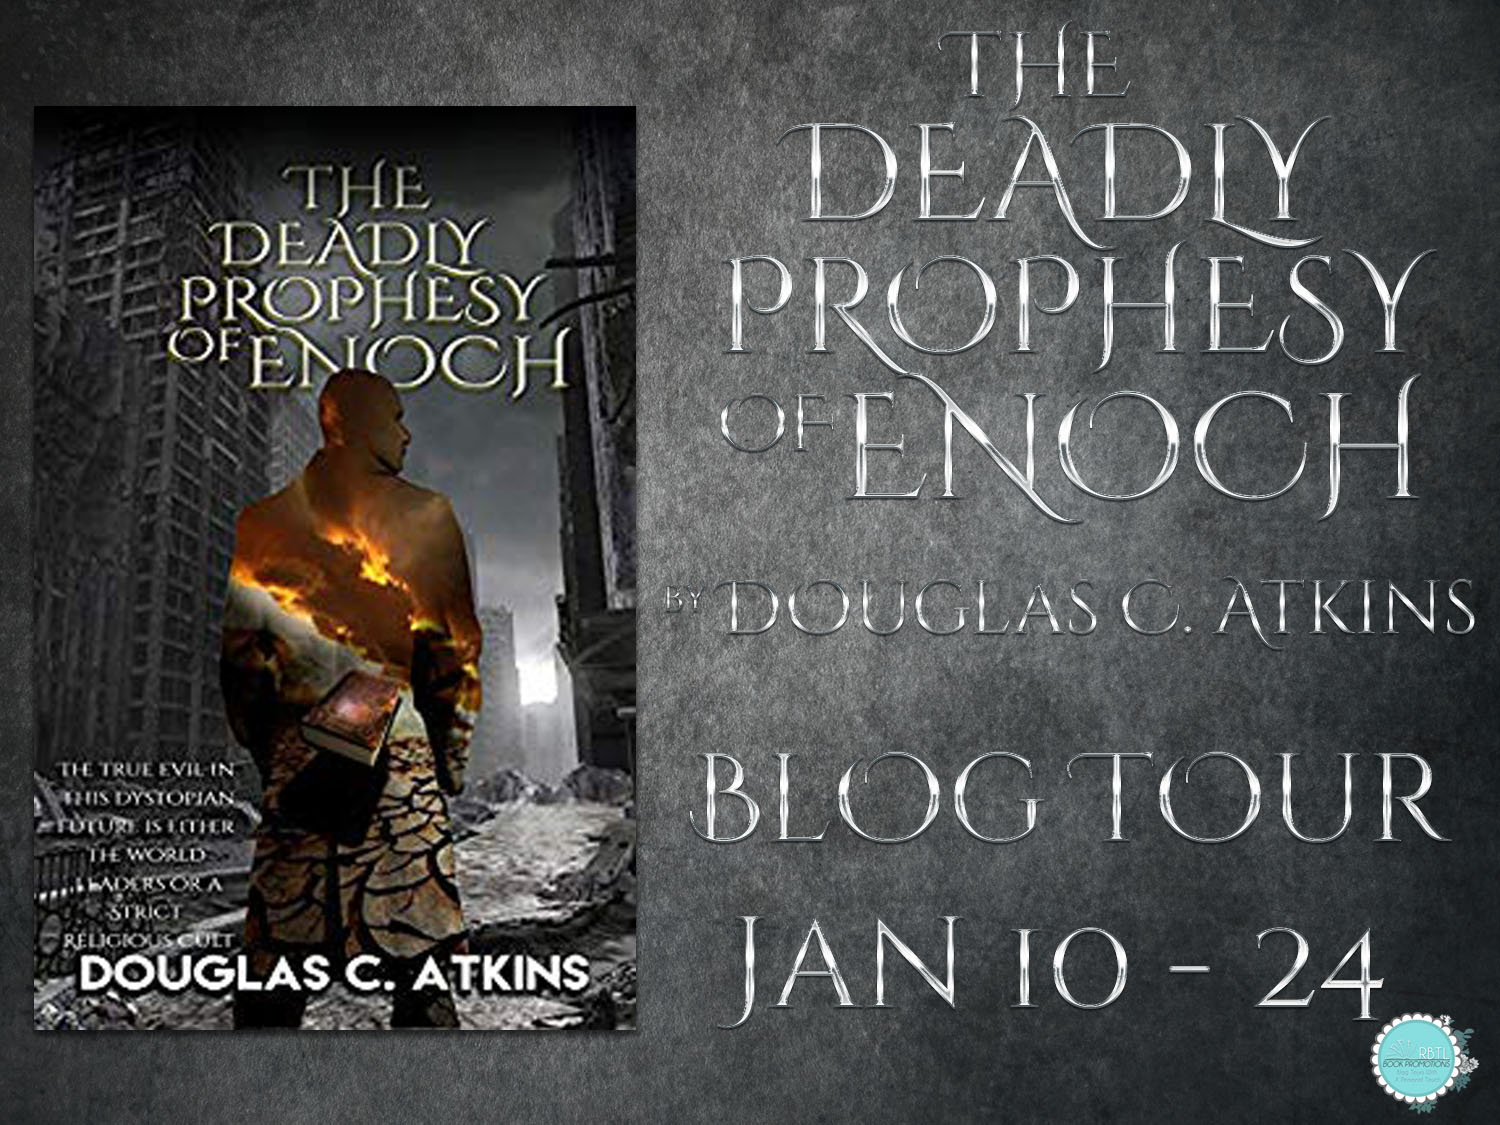 The Deadly Prophesy of Enoch